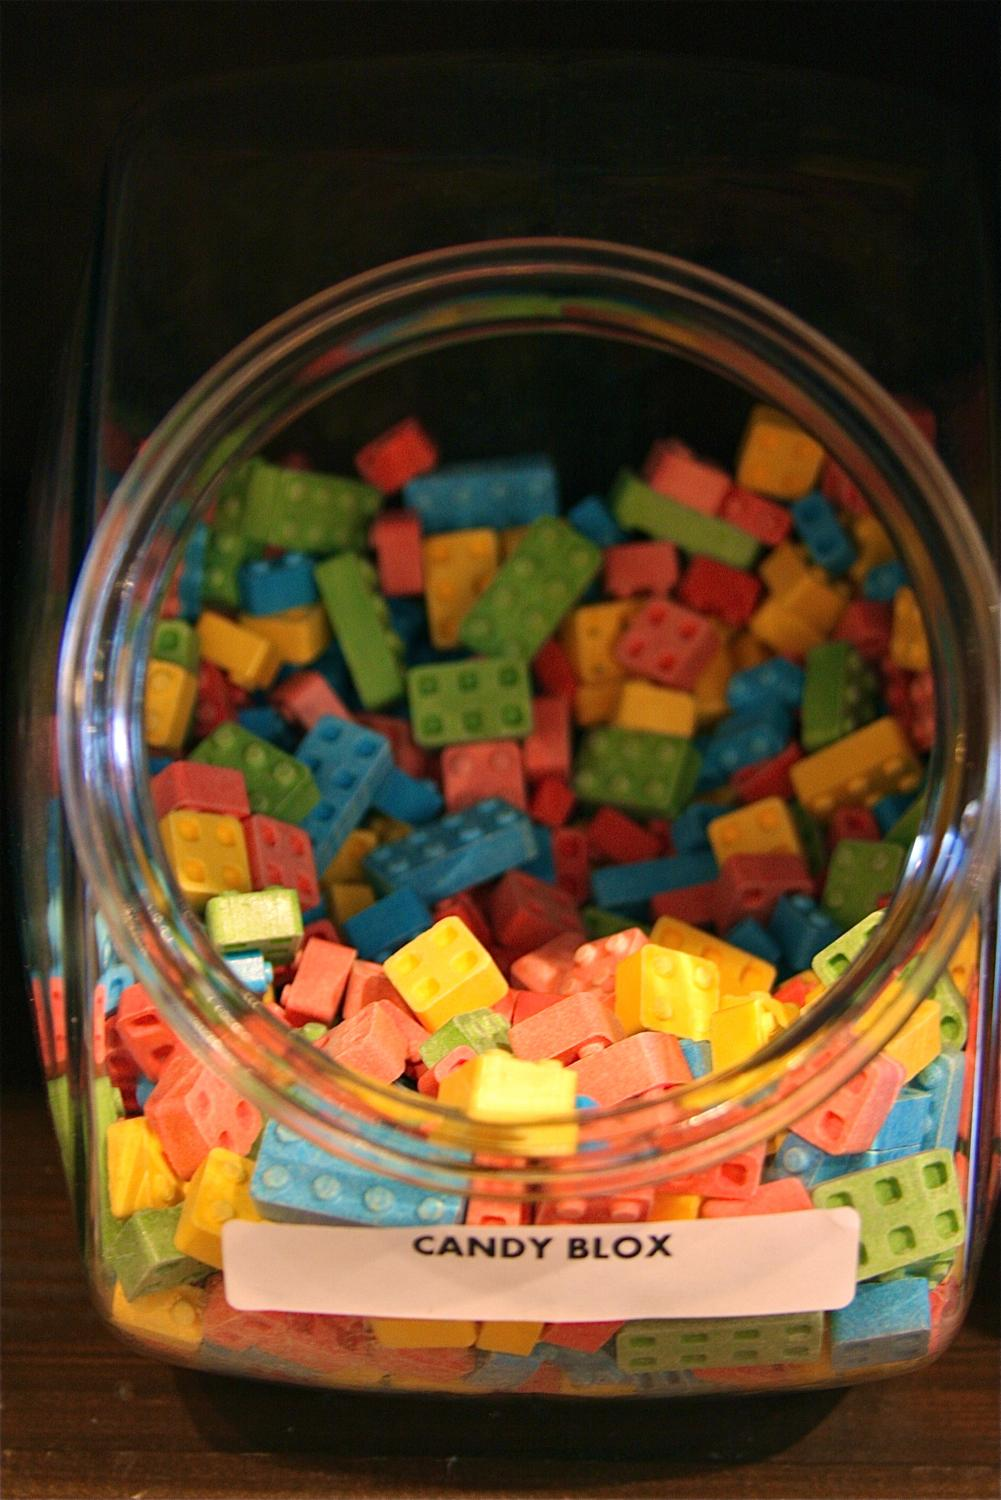 Witt's End Candy Emporium brings back the magic of old-timey candy shops with glass jars and barrels filled with treats. Pixie Stix, Moon Pies, gummy worms, saltwater taffy, and tons of others are available for purchase. ADDRESS: 305 Fairfield Ave., Bellevue, KY 41073 / Image: Molly Paz // Published: 2.17.17